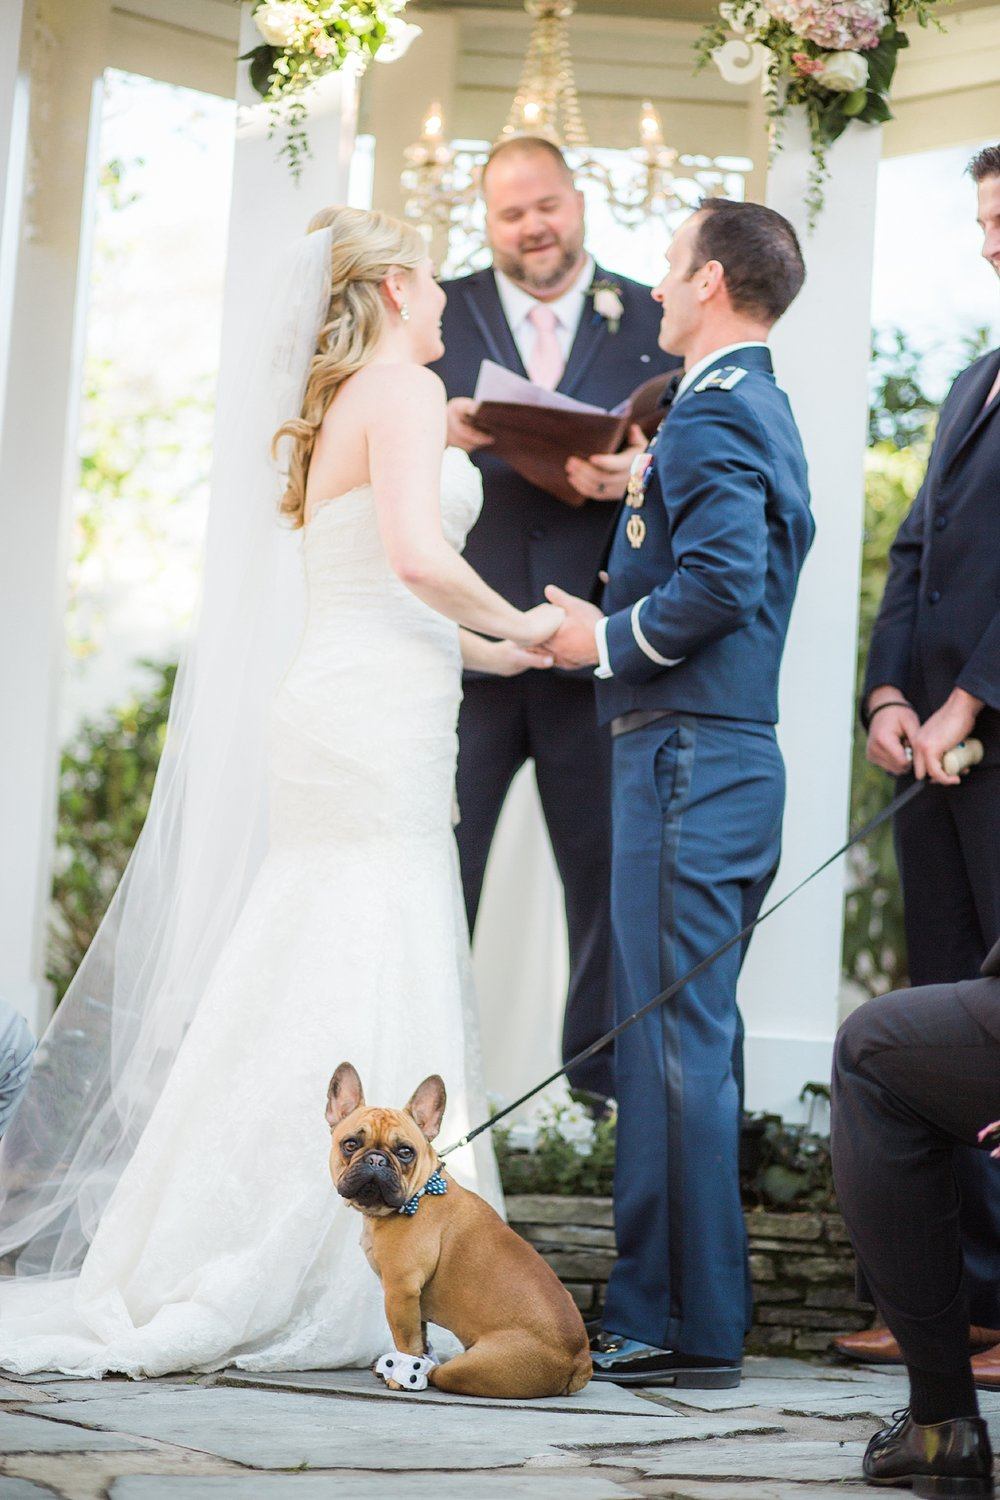 dog-in-wedding-ceremony.jpg